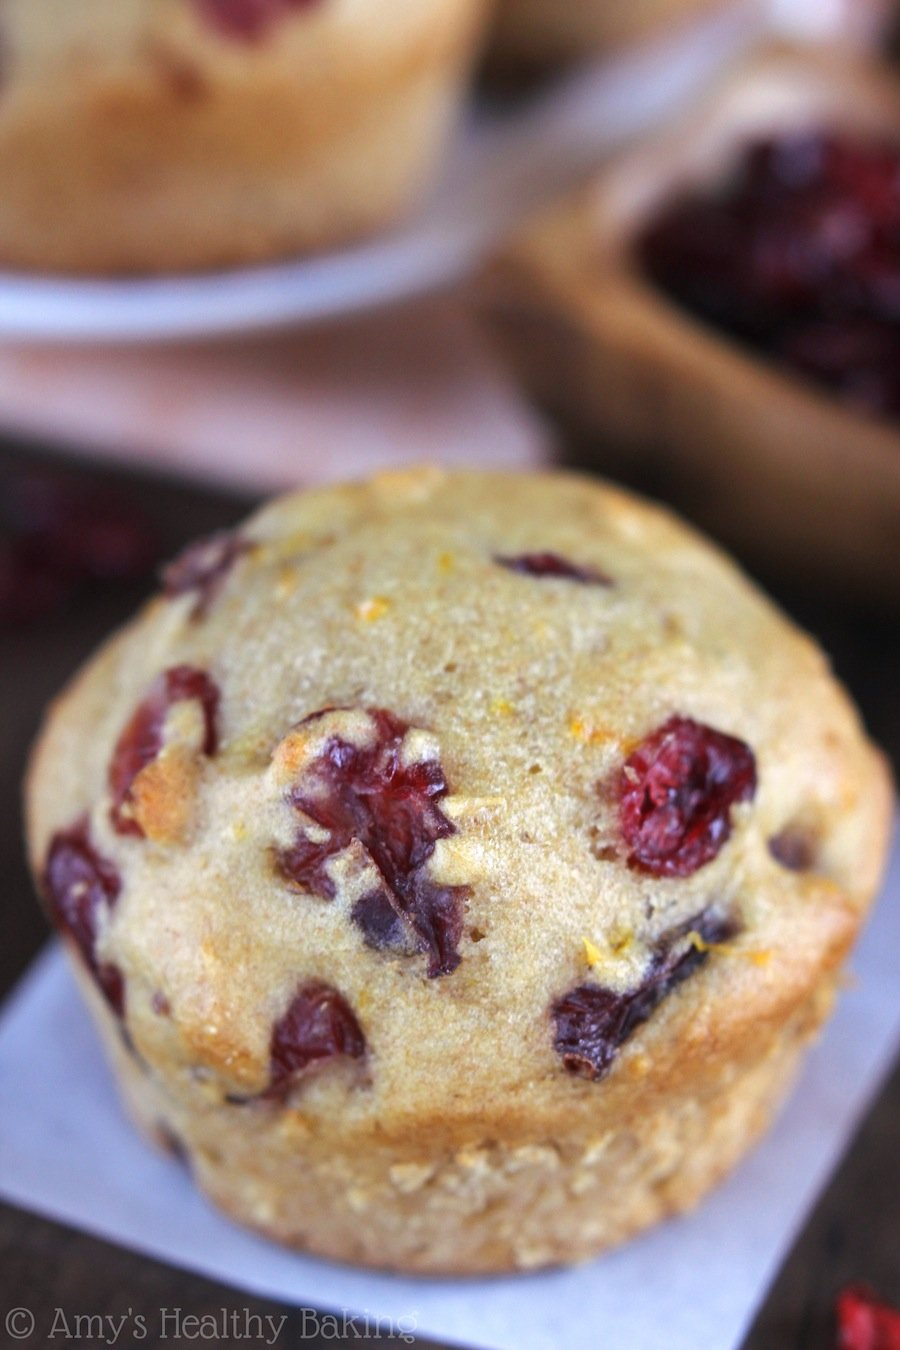 Cranberry Orange Muffins -- the BEST recipe you'll find! Soft, tender & bursting with bright citrus flavor! We finished the batch in one day!